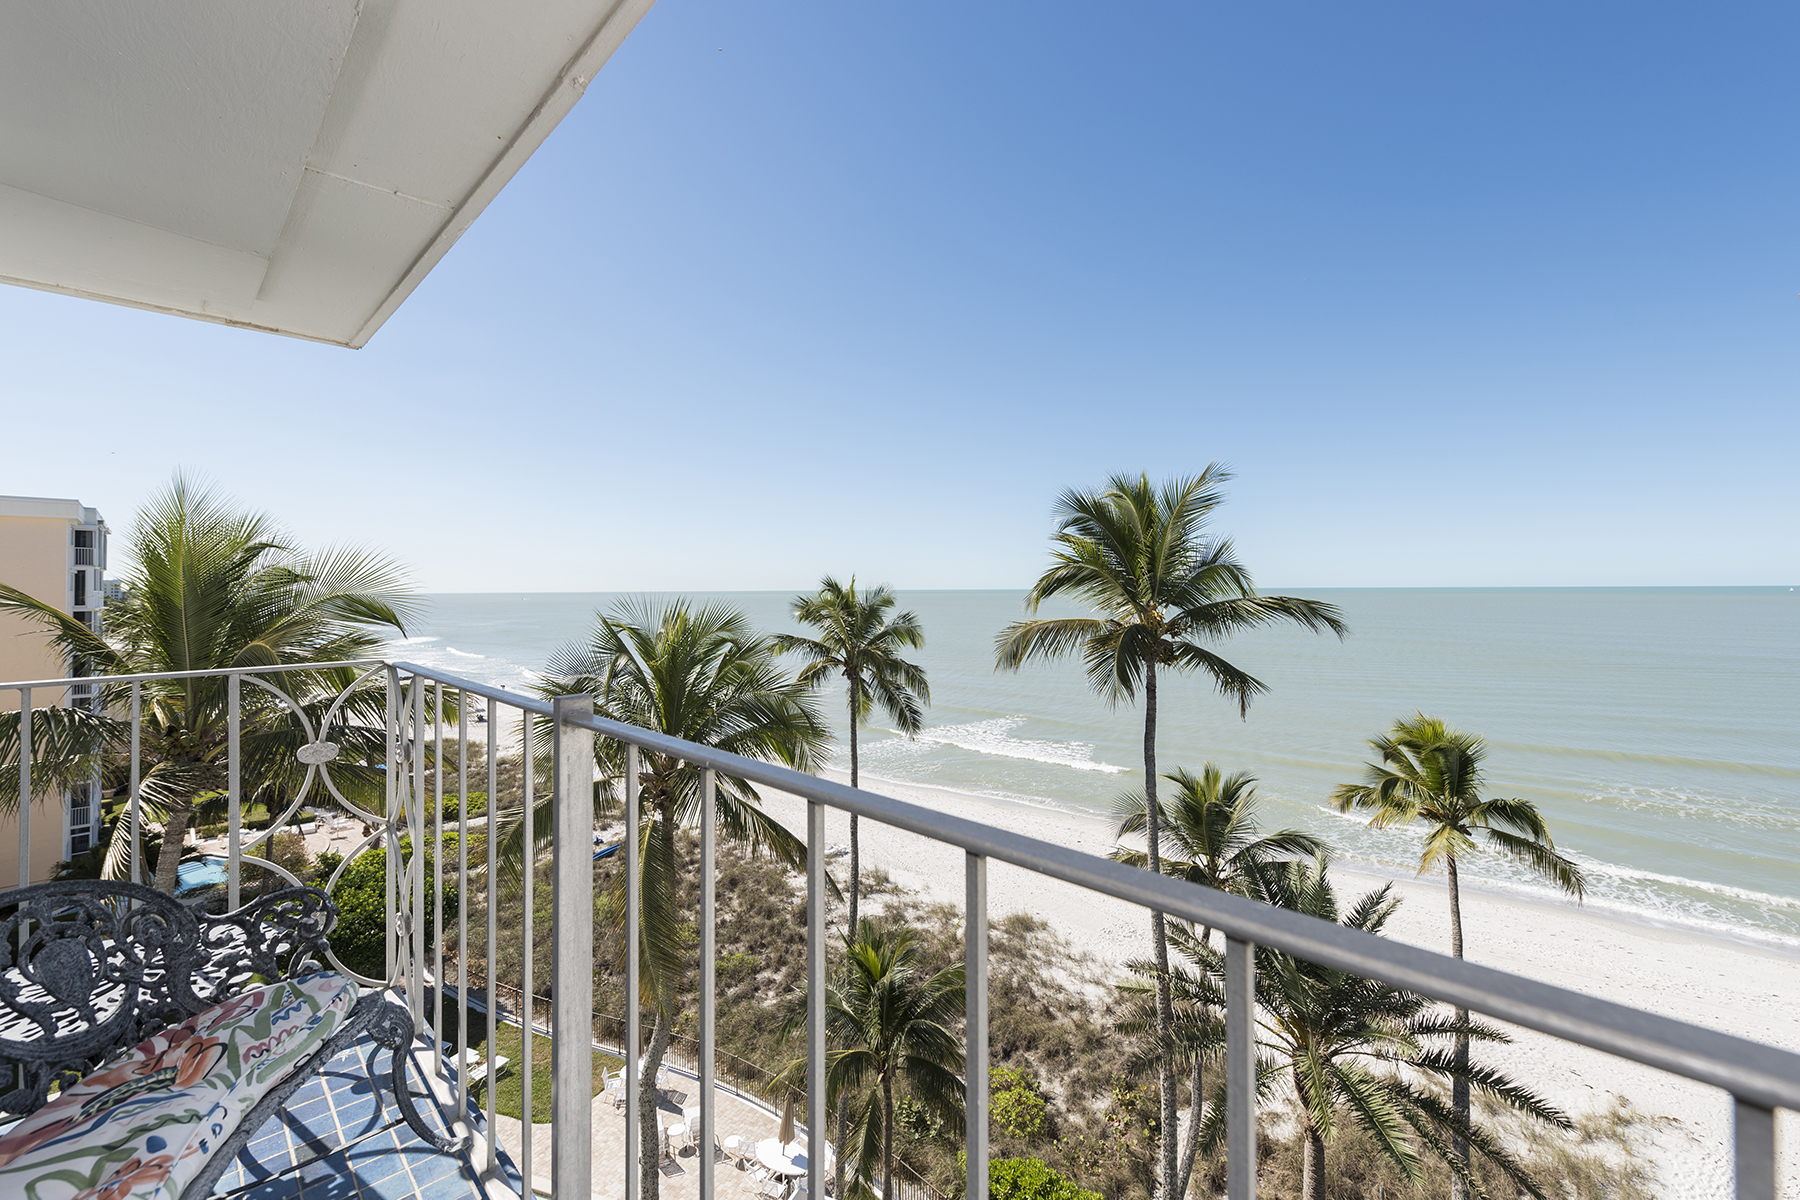 Condominium for Sale at MOORINGS - CARRIAGE CLUB 2011 Gulf Shore Blvd N 61 Naples, Florida, 34102 United States